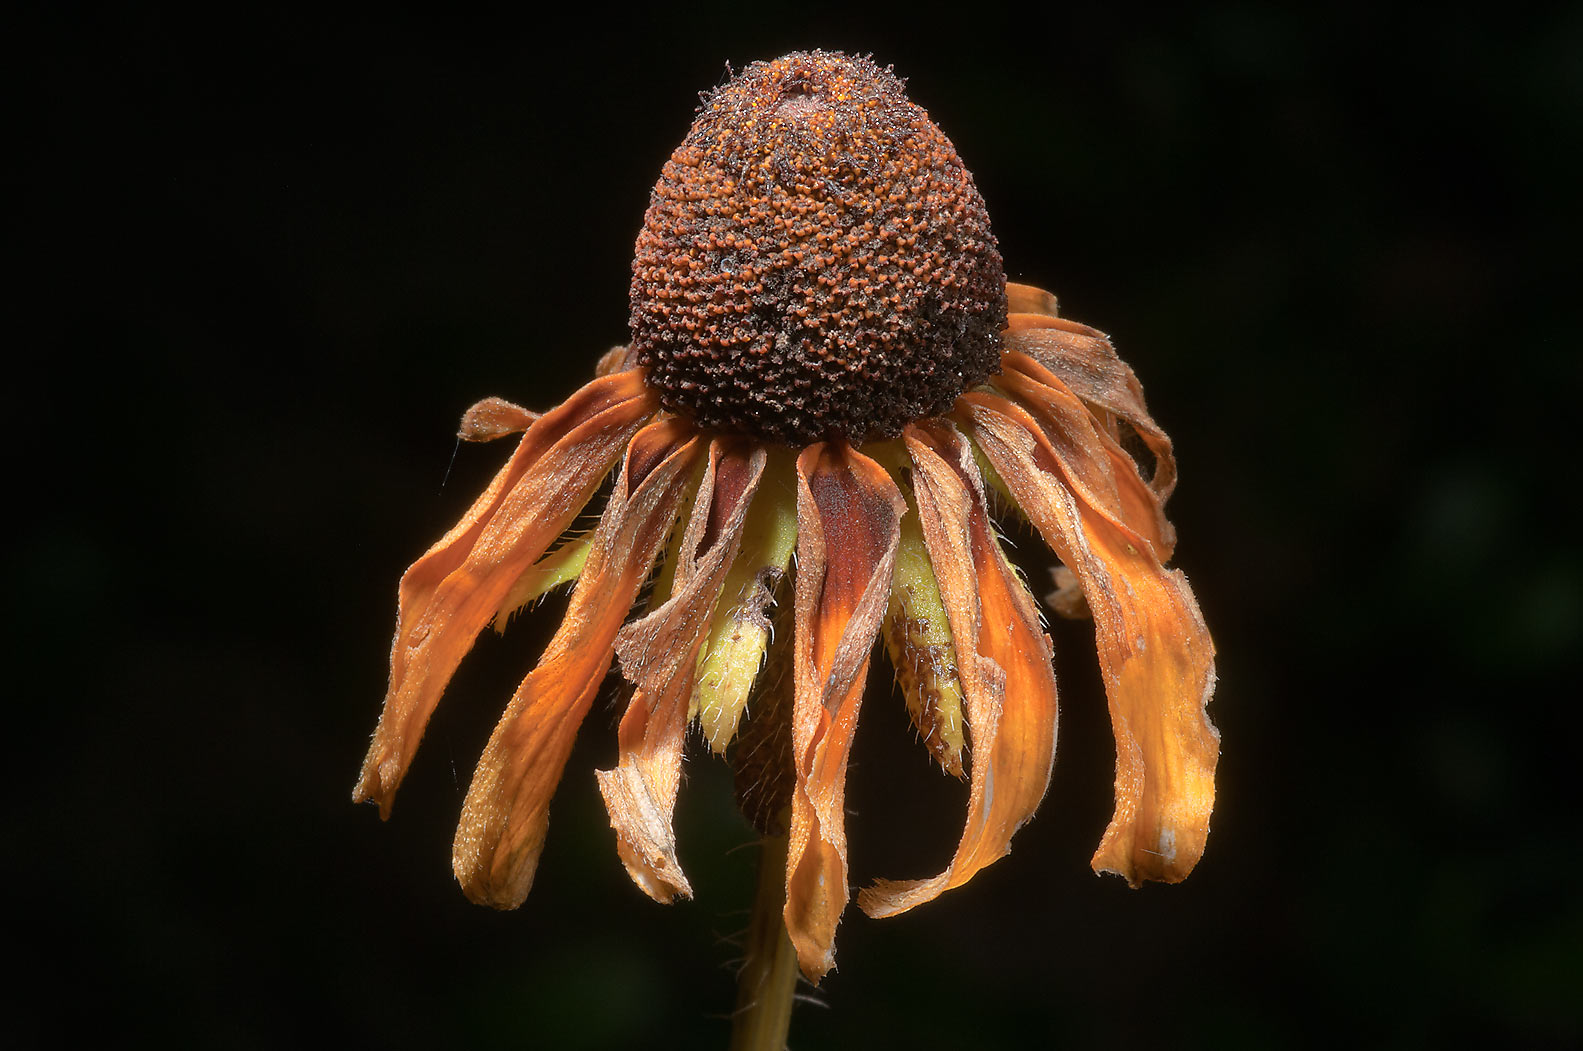 Mature flower of black-eyed susan in Lick Creek Park. College Station, Texas